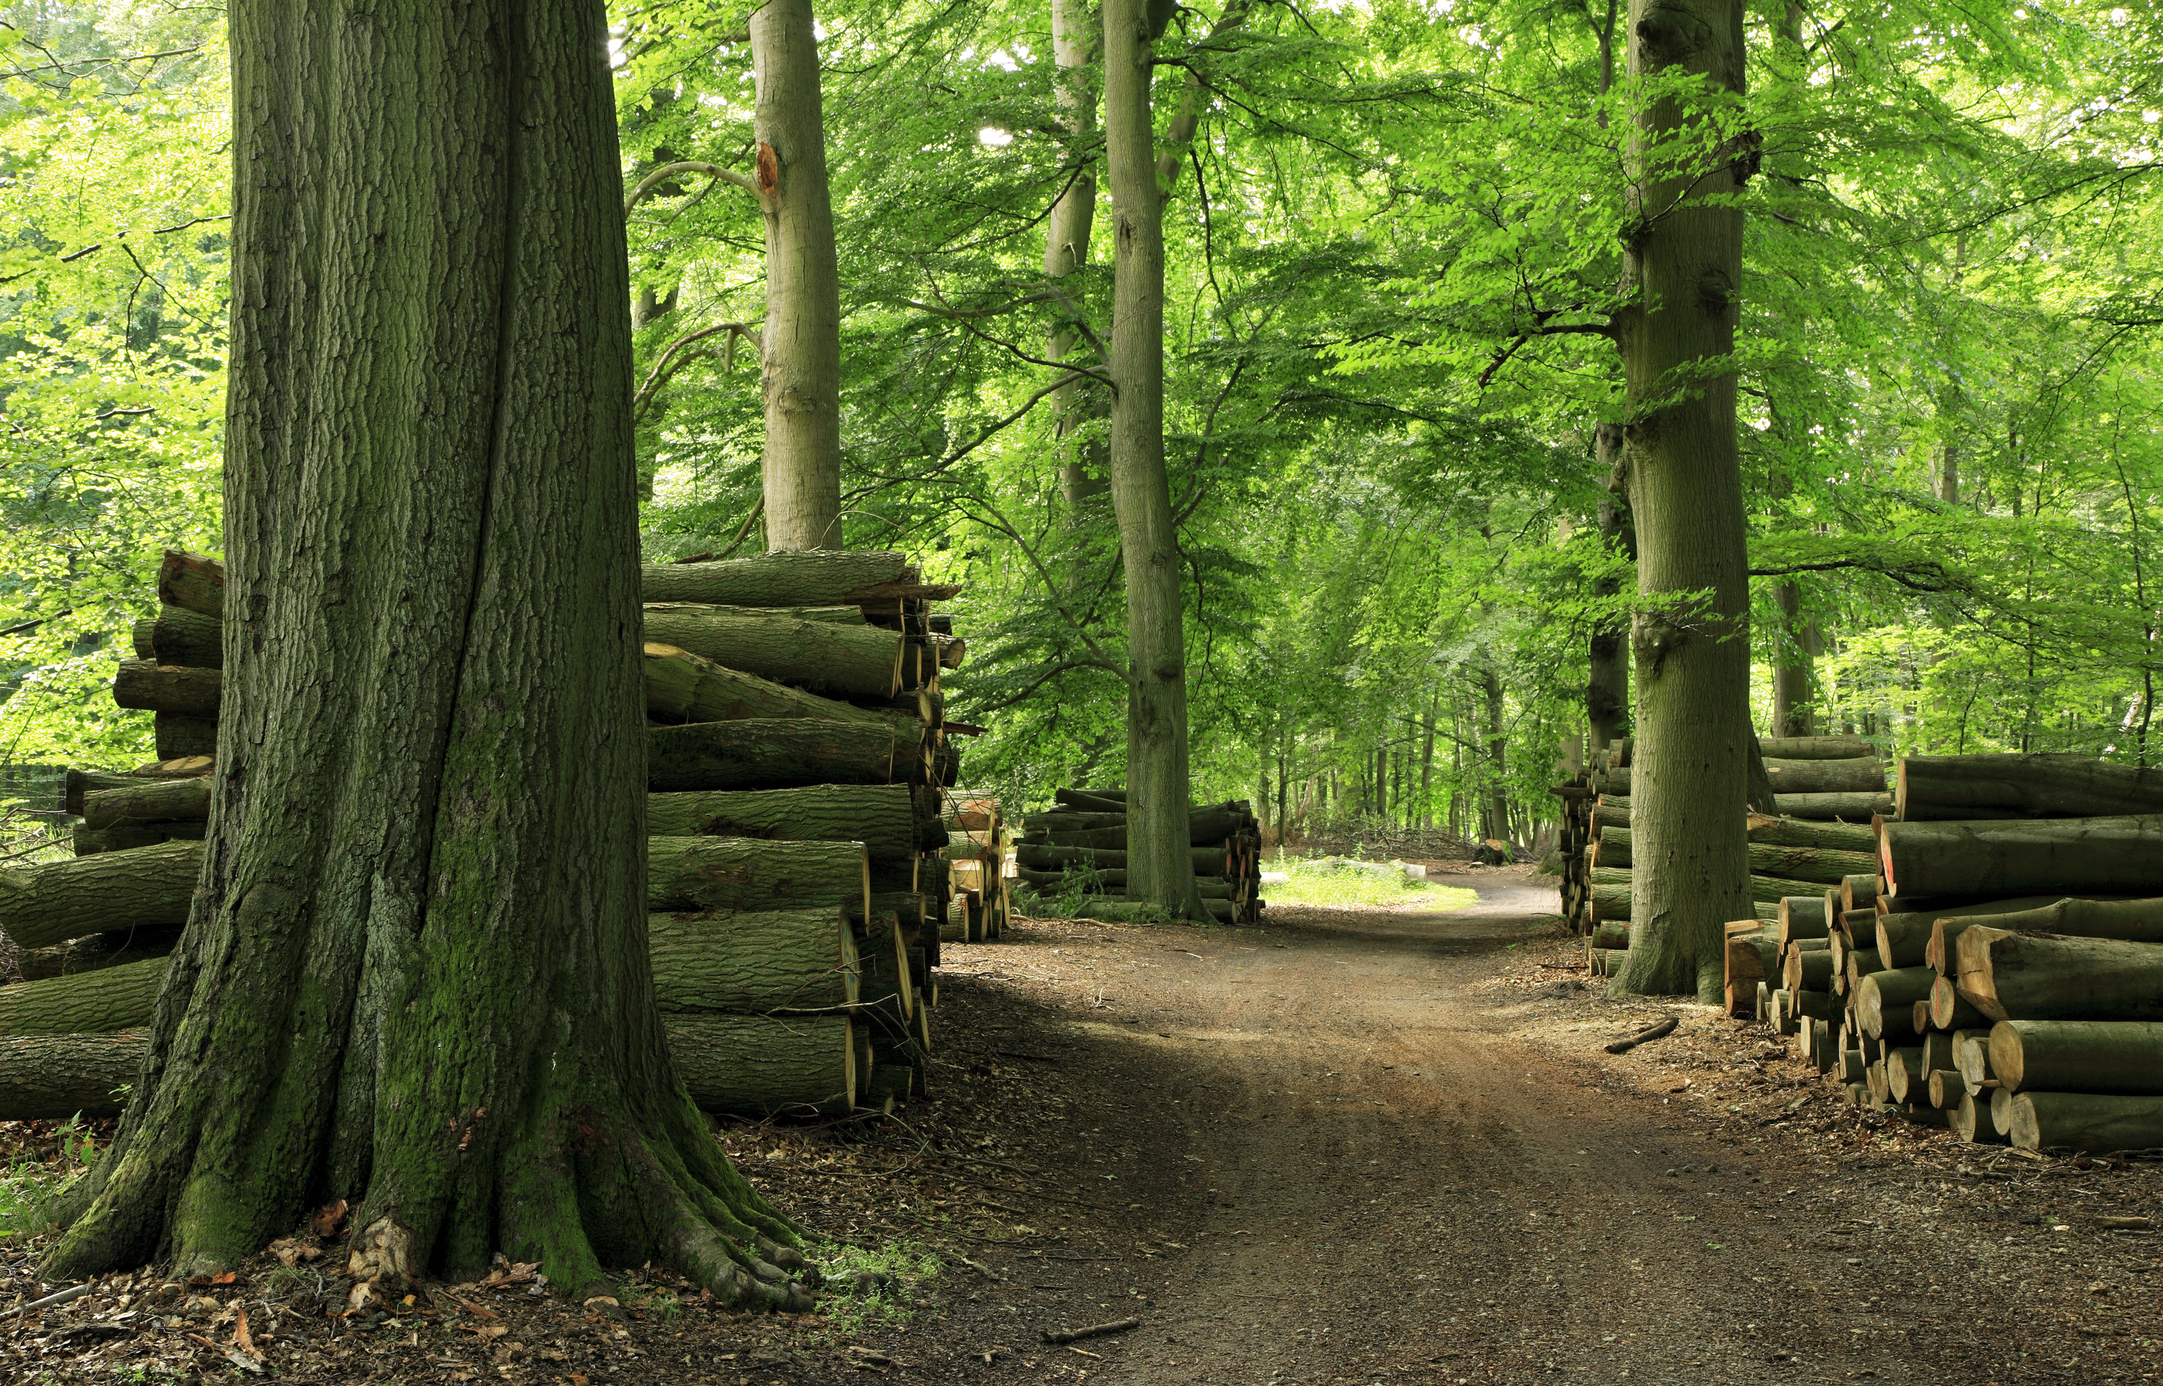 A picture of a road through a forest with logs stacked up on both sides of the road.